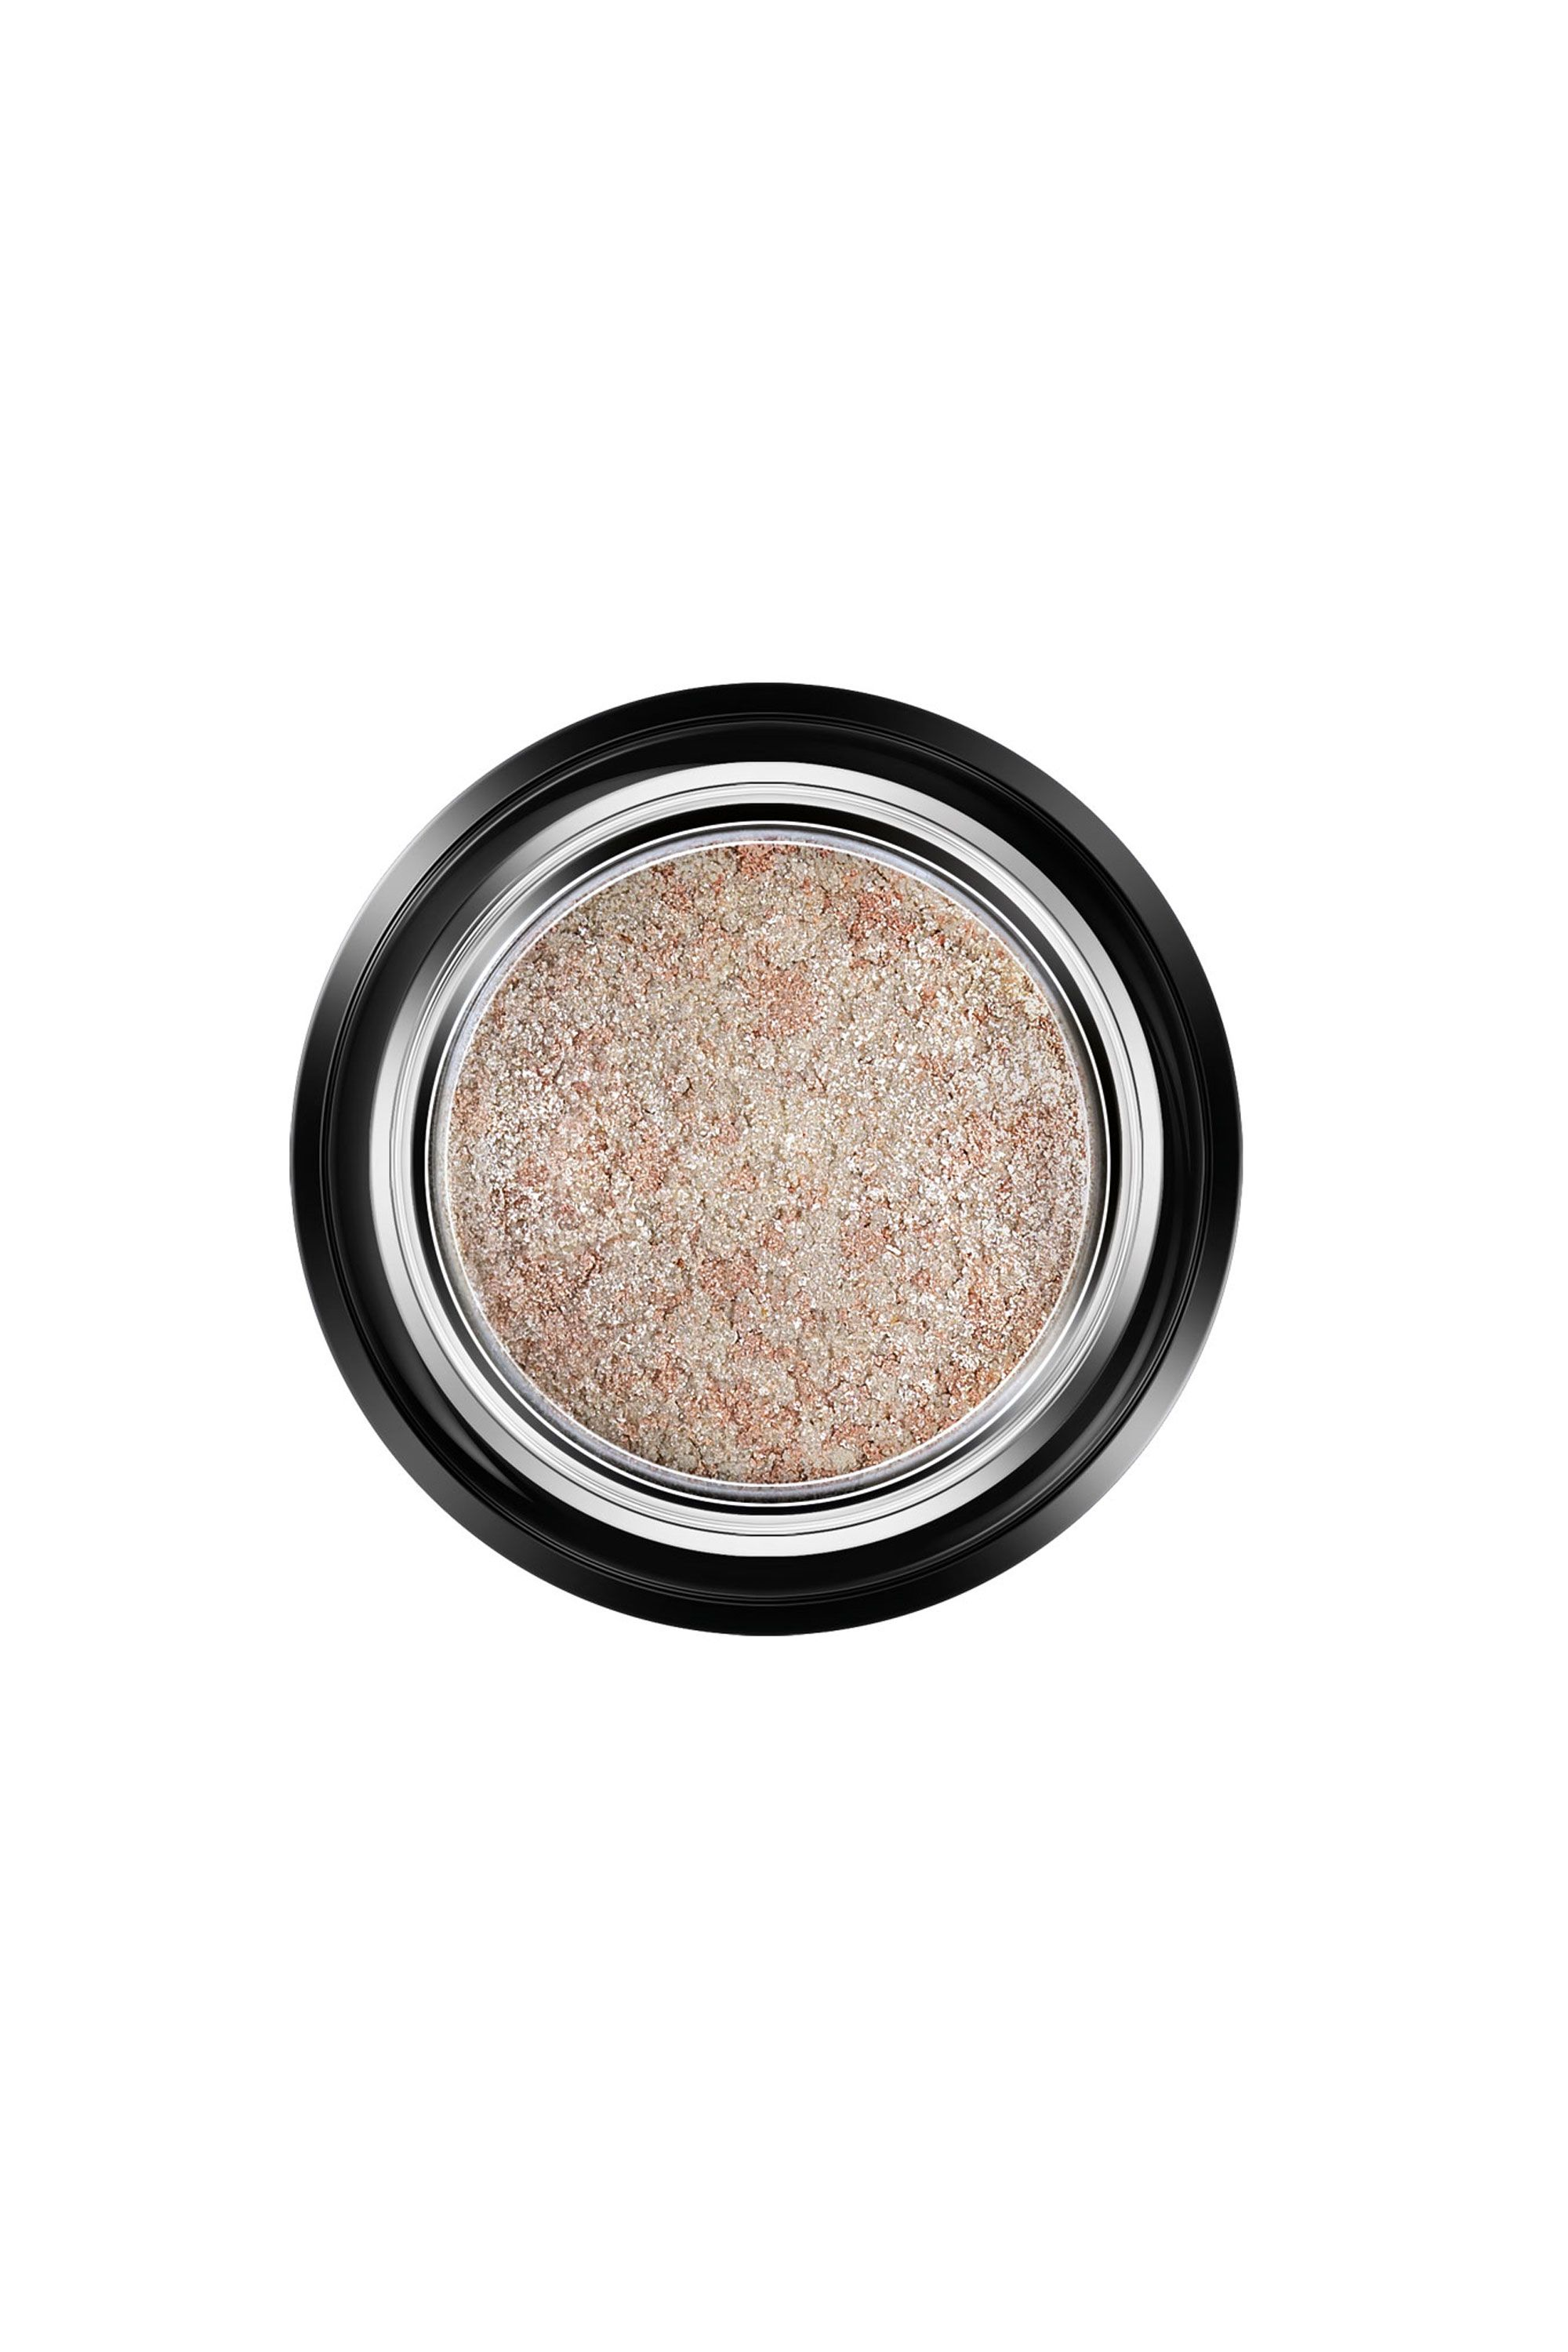 "<p>This soft, shimmery shadow is a favorite of Sotomayor's. ""You can easily apply it with your finger,"" he says. ""And the rose gold shade is universally pretty and easy to blend on all skin tones."" Lightly tap it across your lids and into the inner corners to look more awake in seconds.</p><p><strong data-redactor-tag=""strong"" data-verified=""redactor"">$32; <a href=""http://www.giorgioarmanibeauty-usa.com/makeup/eye-makeup/eyeshadow/eyes-to-kill-intense-eyeshadow/A418.html"">giorgioarmanibeauty.com</a></strong></p>"